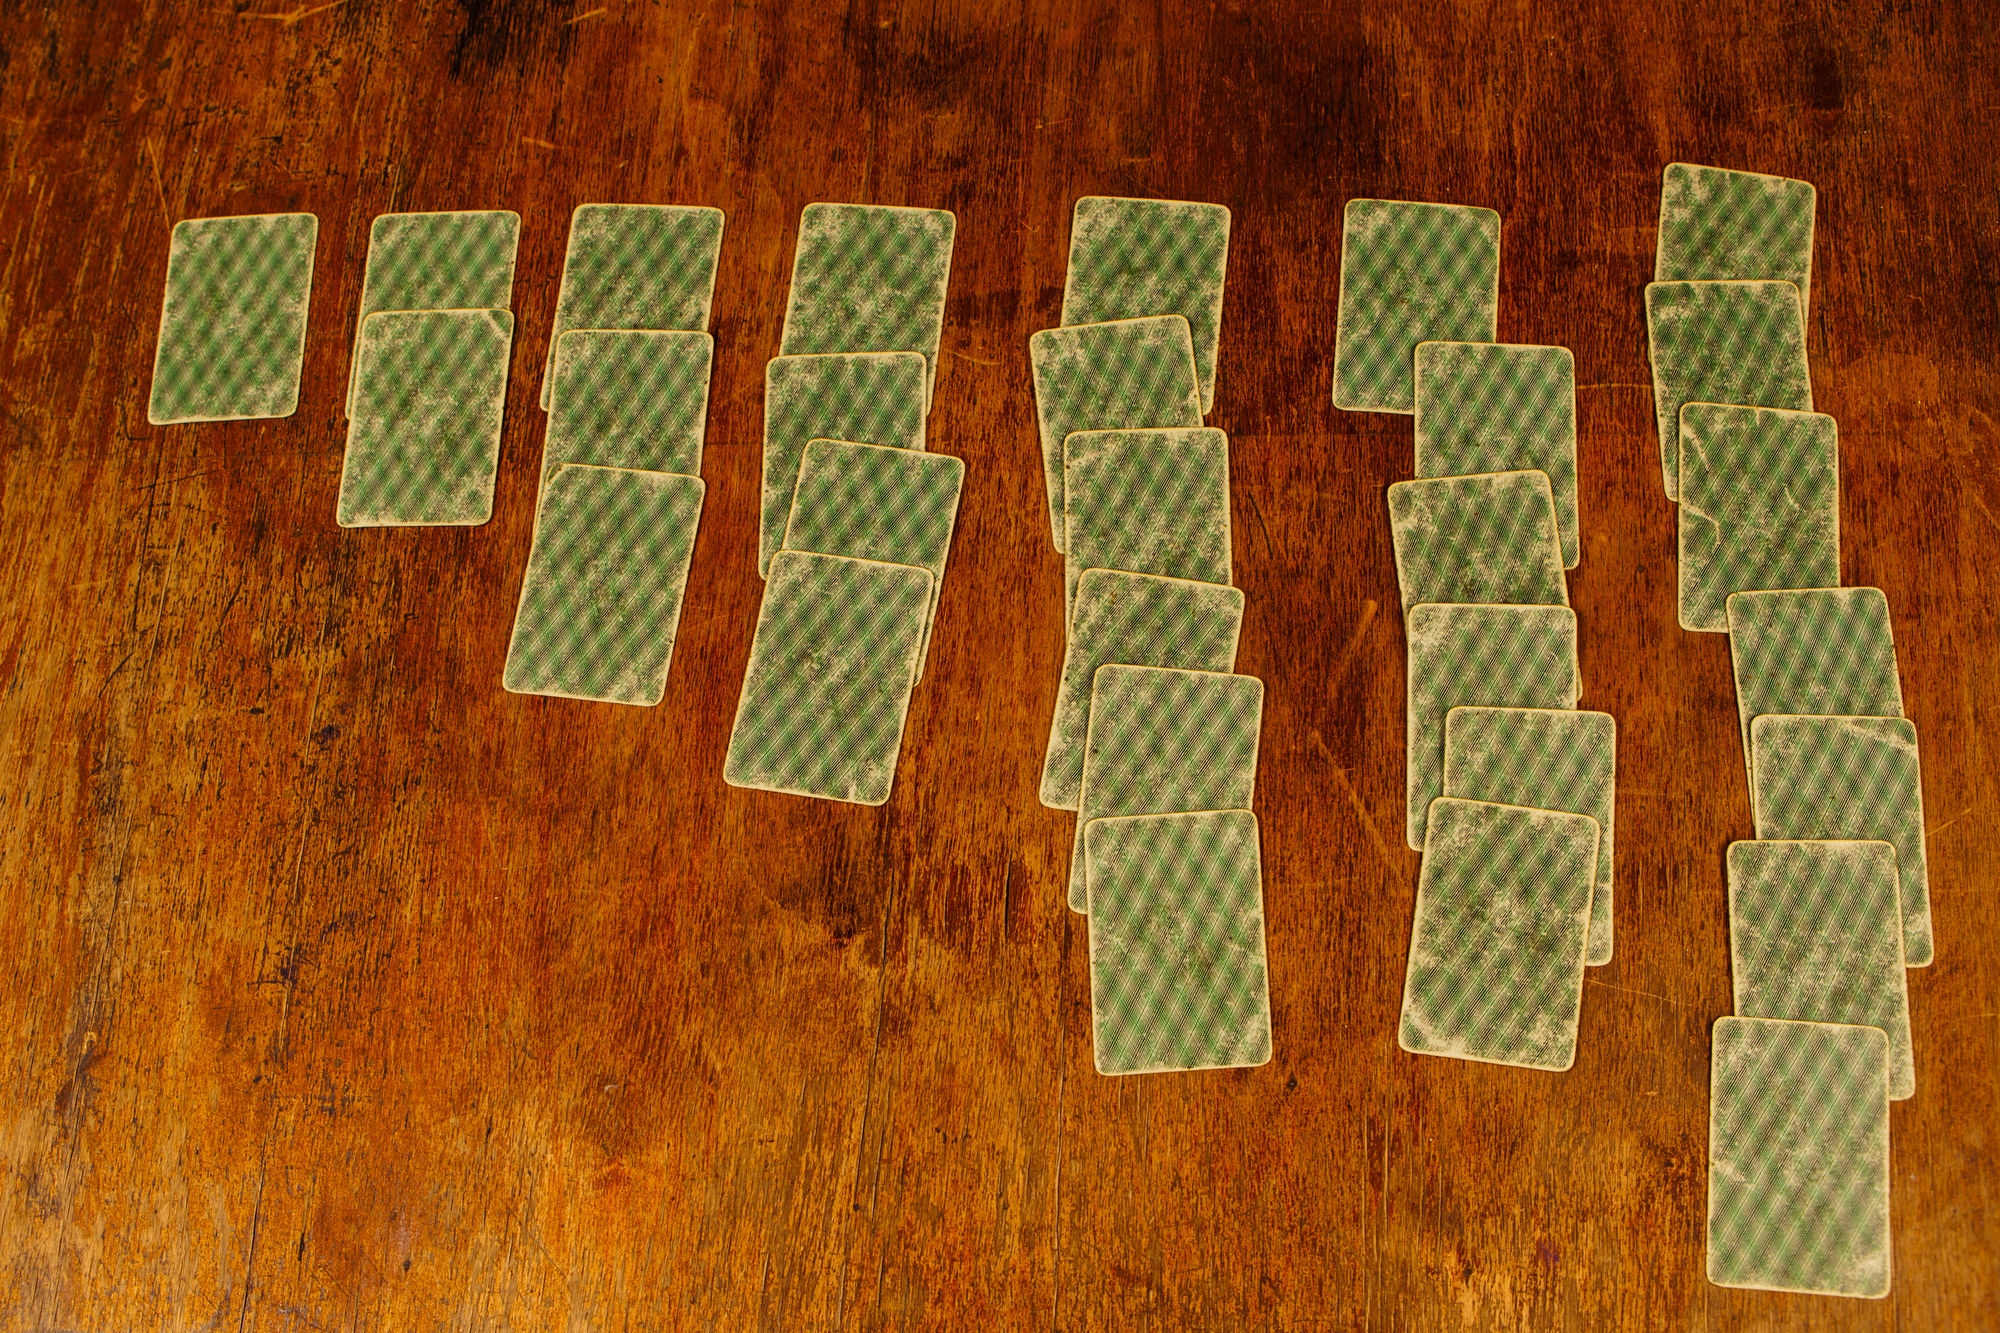 solitaire of playing cards on a wooden table